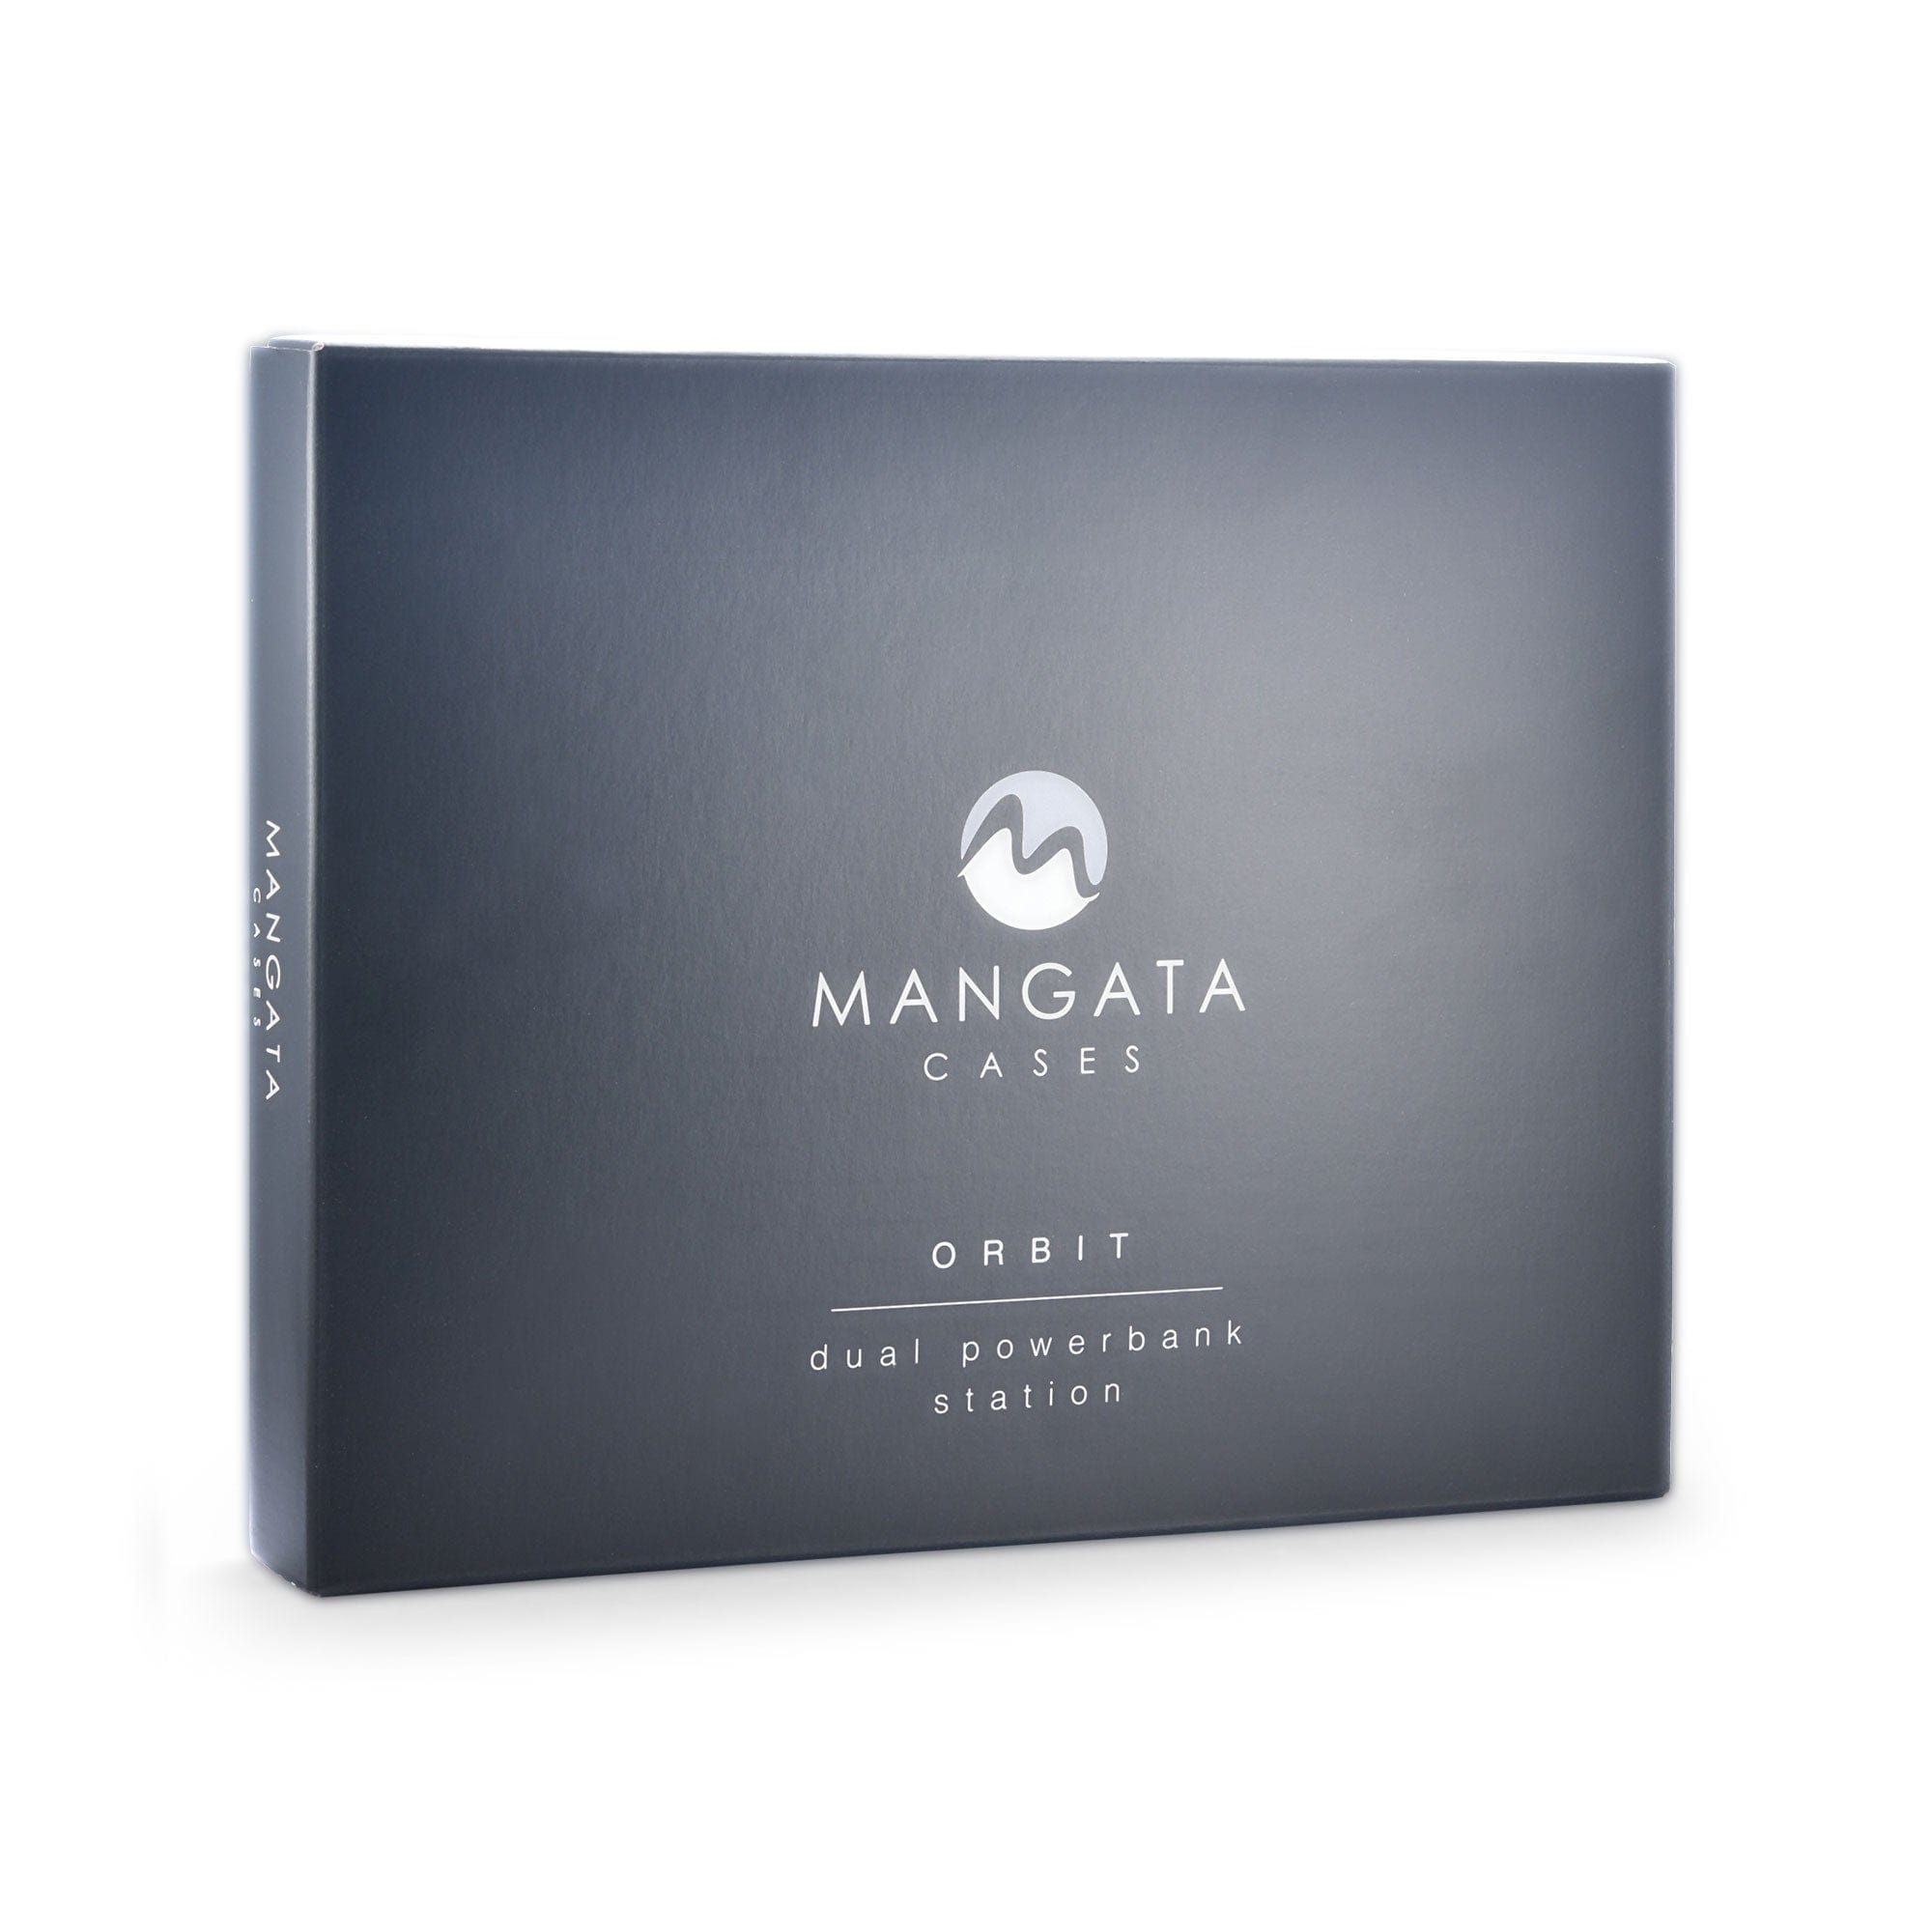 Mangata Orbit Home Battery Station with 2 Wirelessly Charging Power Banks (5,000 mAh each)